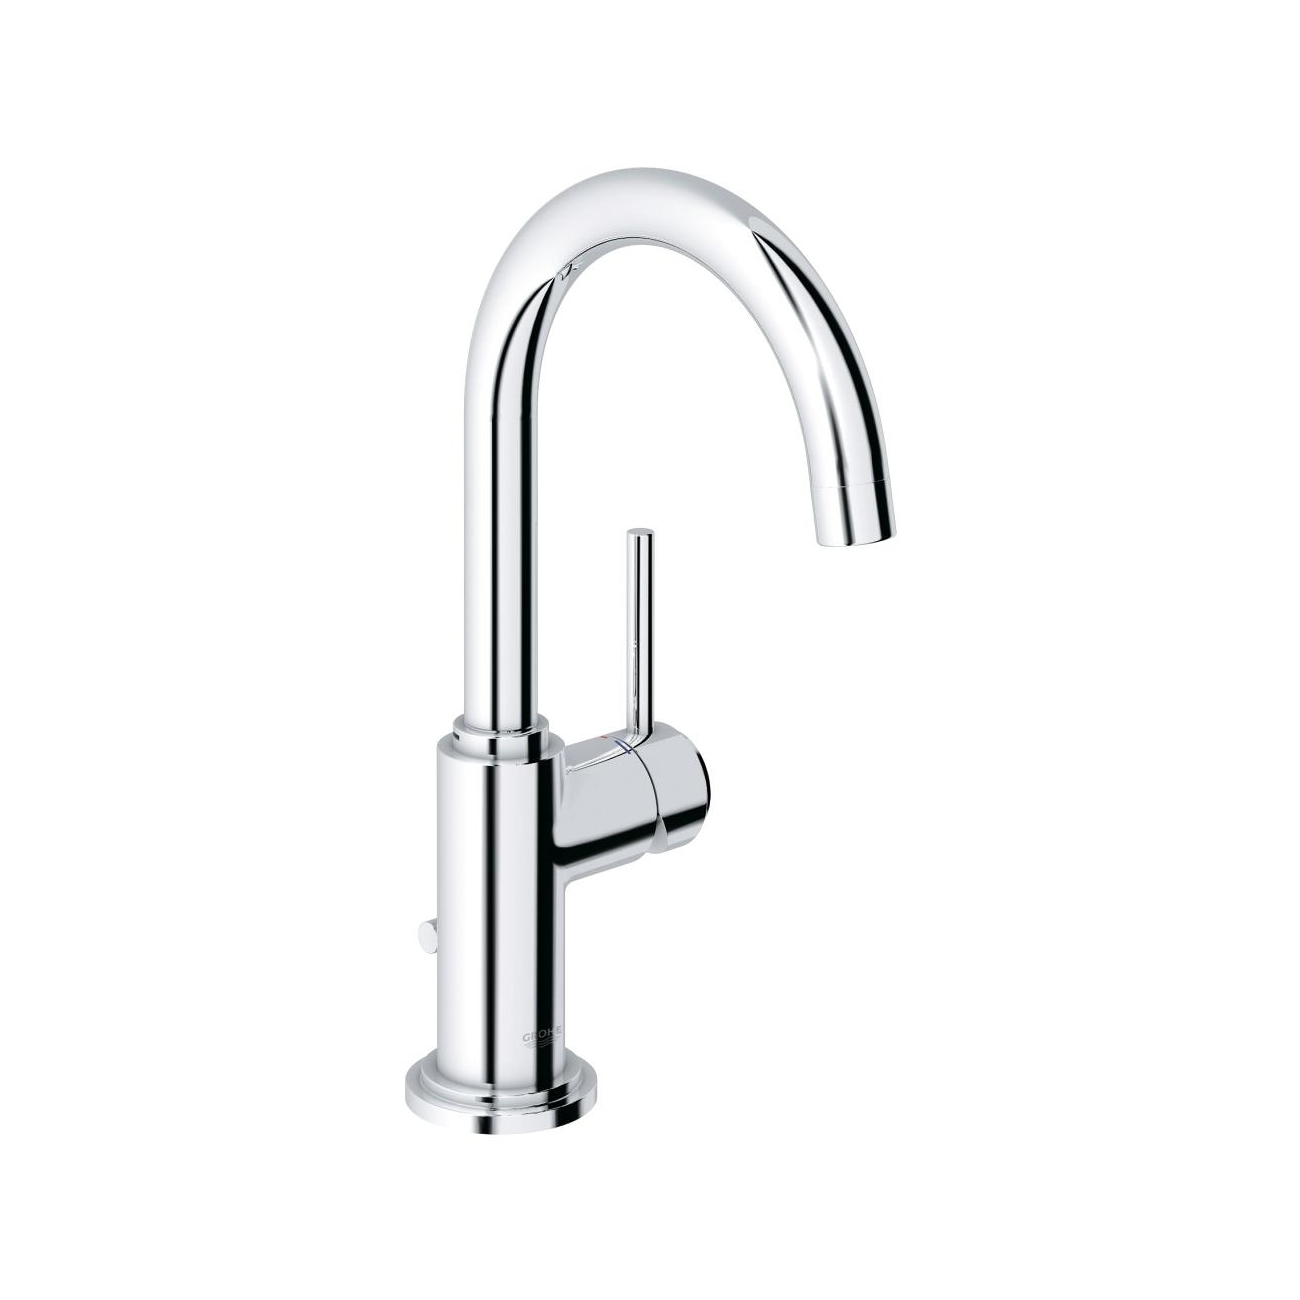 GROHE ATRIO SINGLE LEVER MIXER FOR SINK L